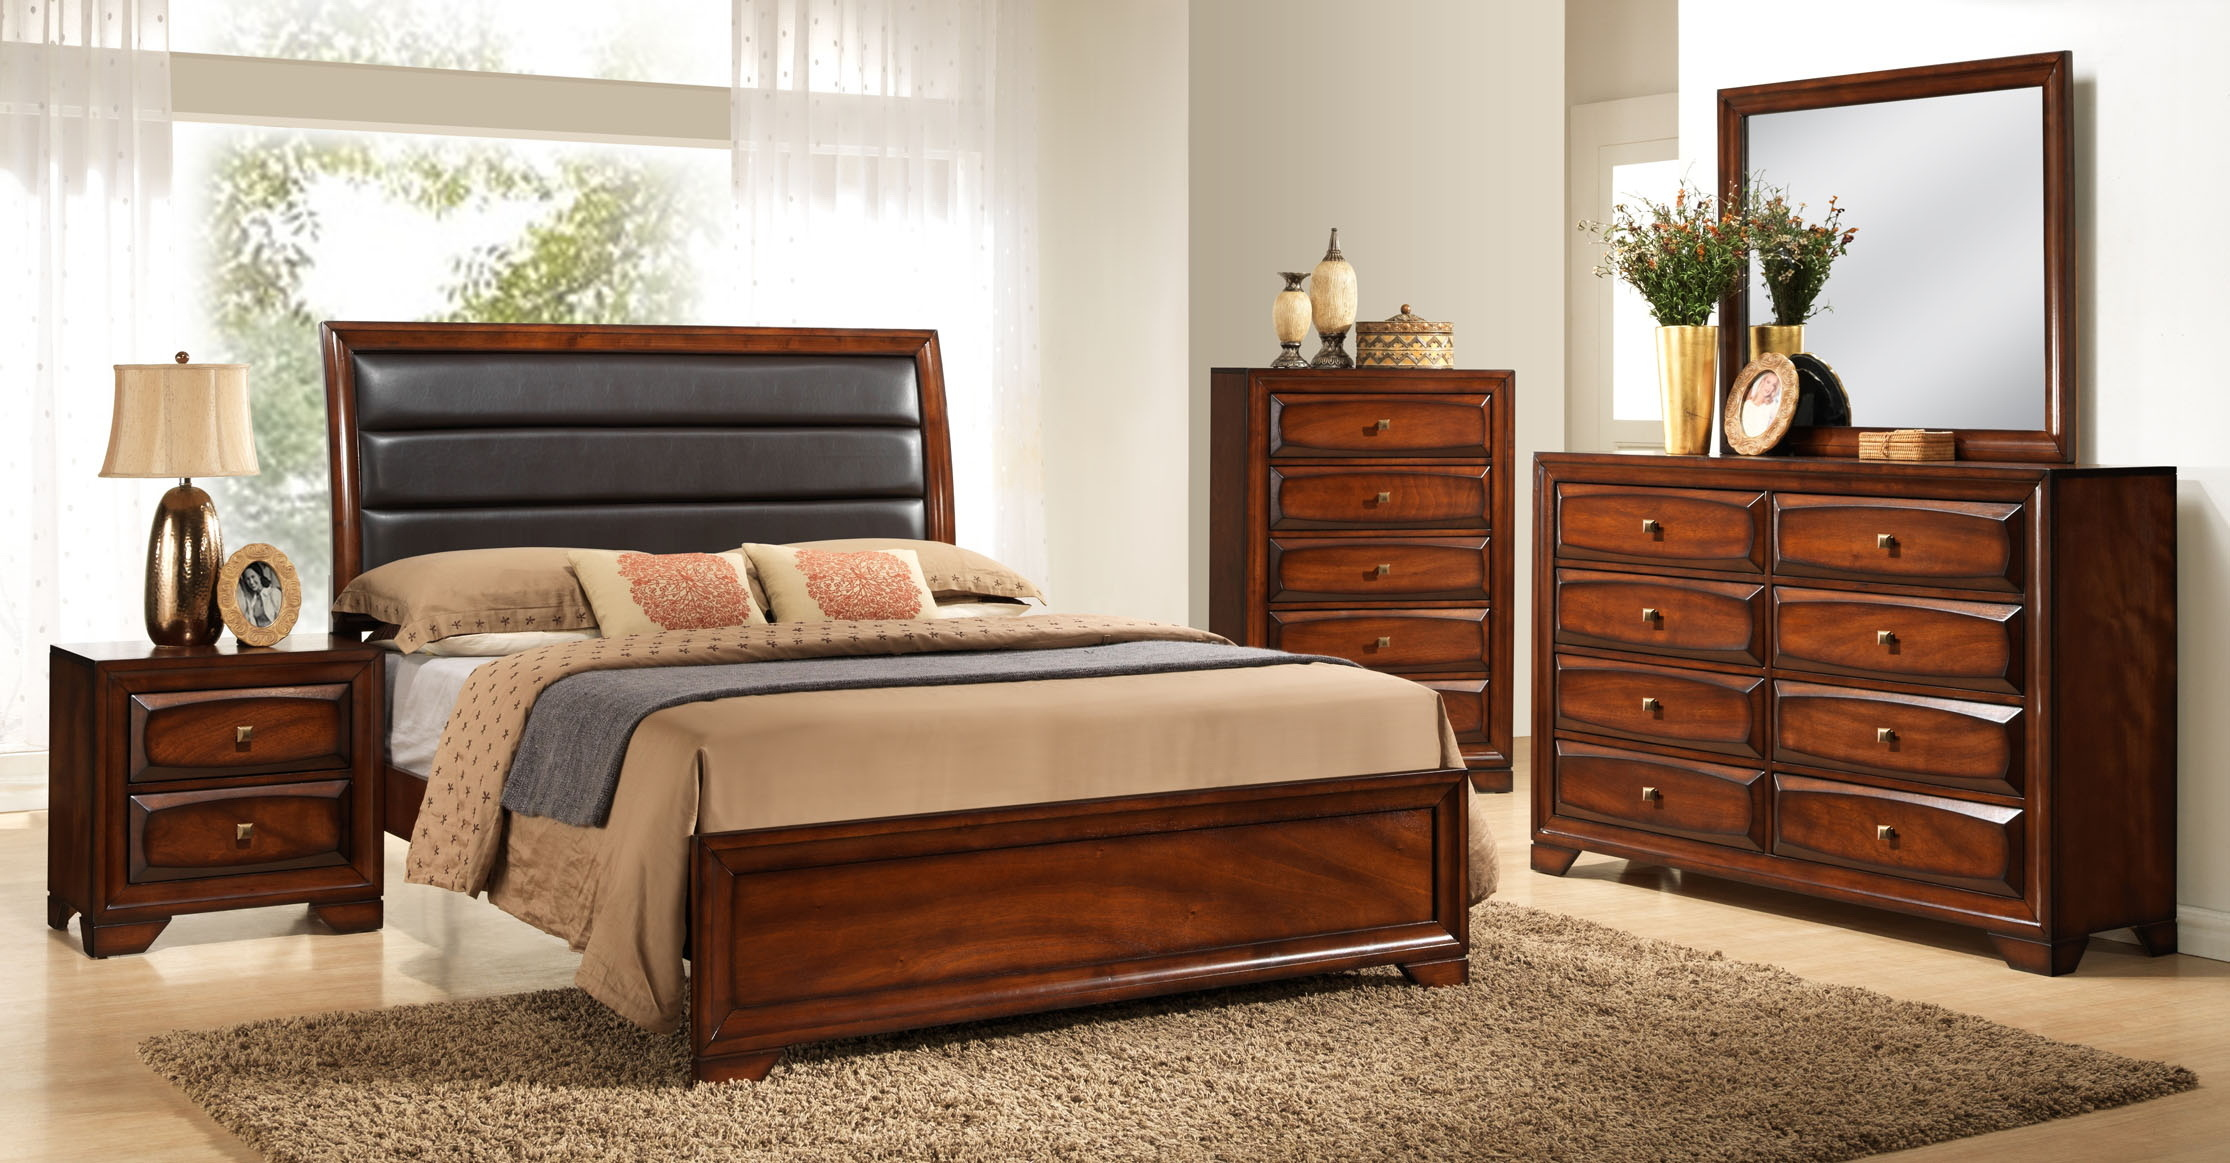 Furniture distribution center in tampa fl 813 444 9 for Furniture 33647